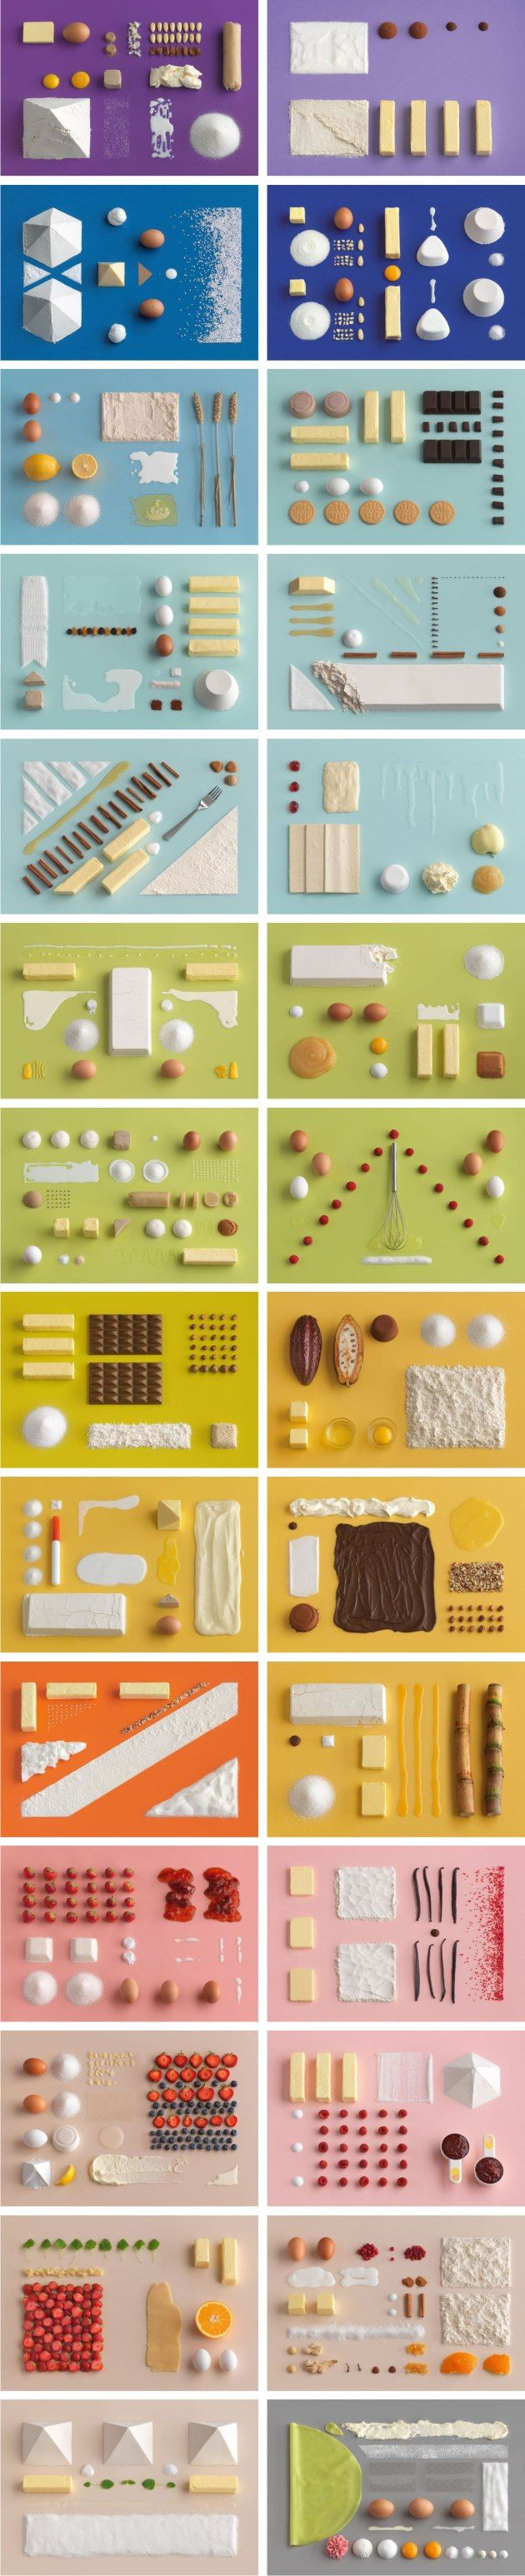 448 best ikea images on Pinterest | Ikea, Ikea art and Street art